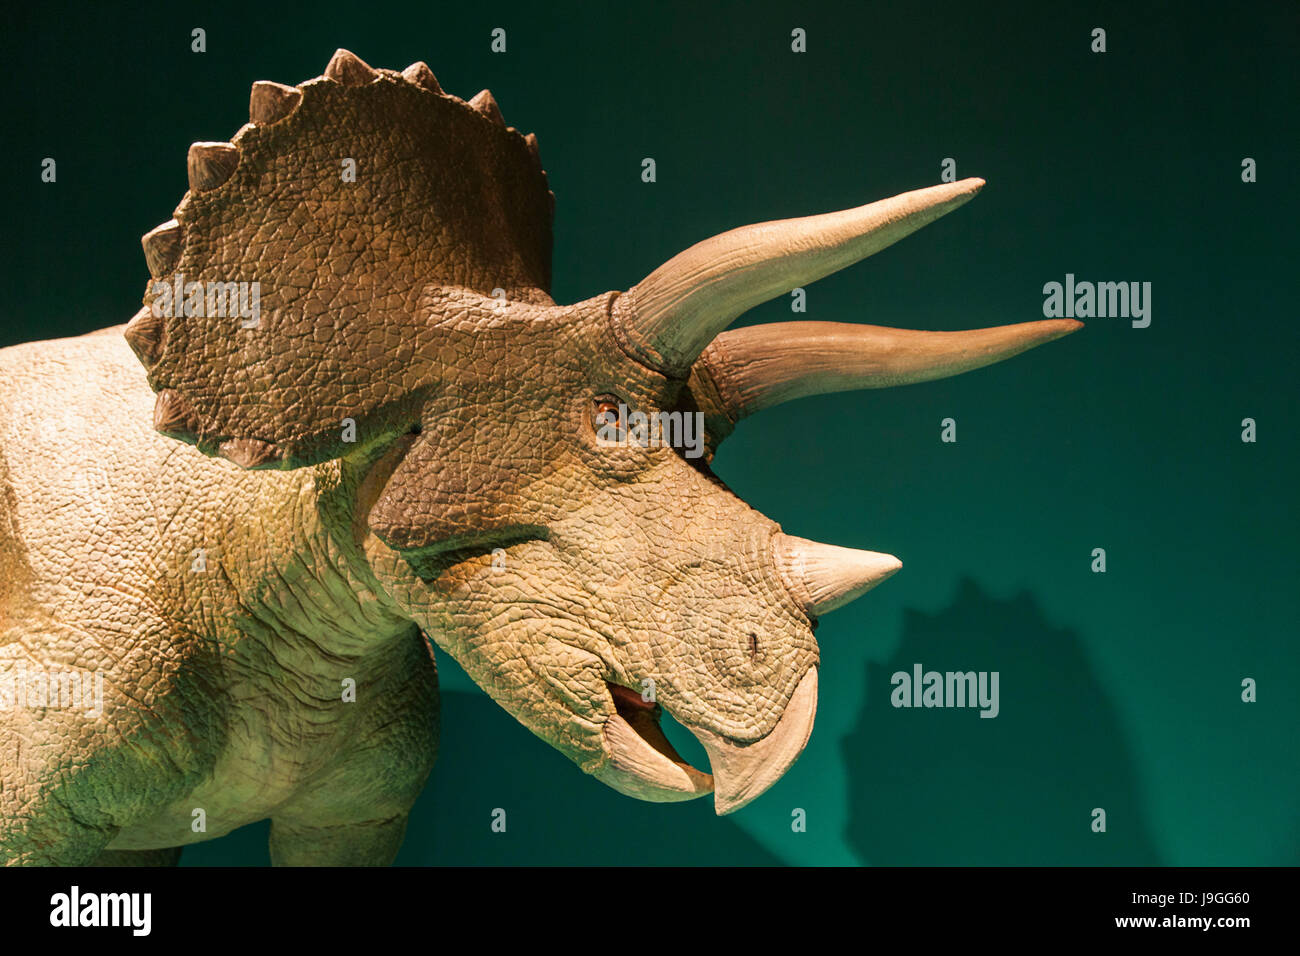 China, Animatronic Model of Triceratops - Stock Image